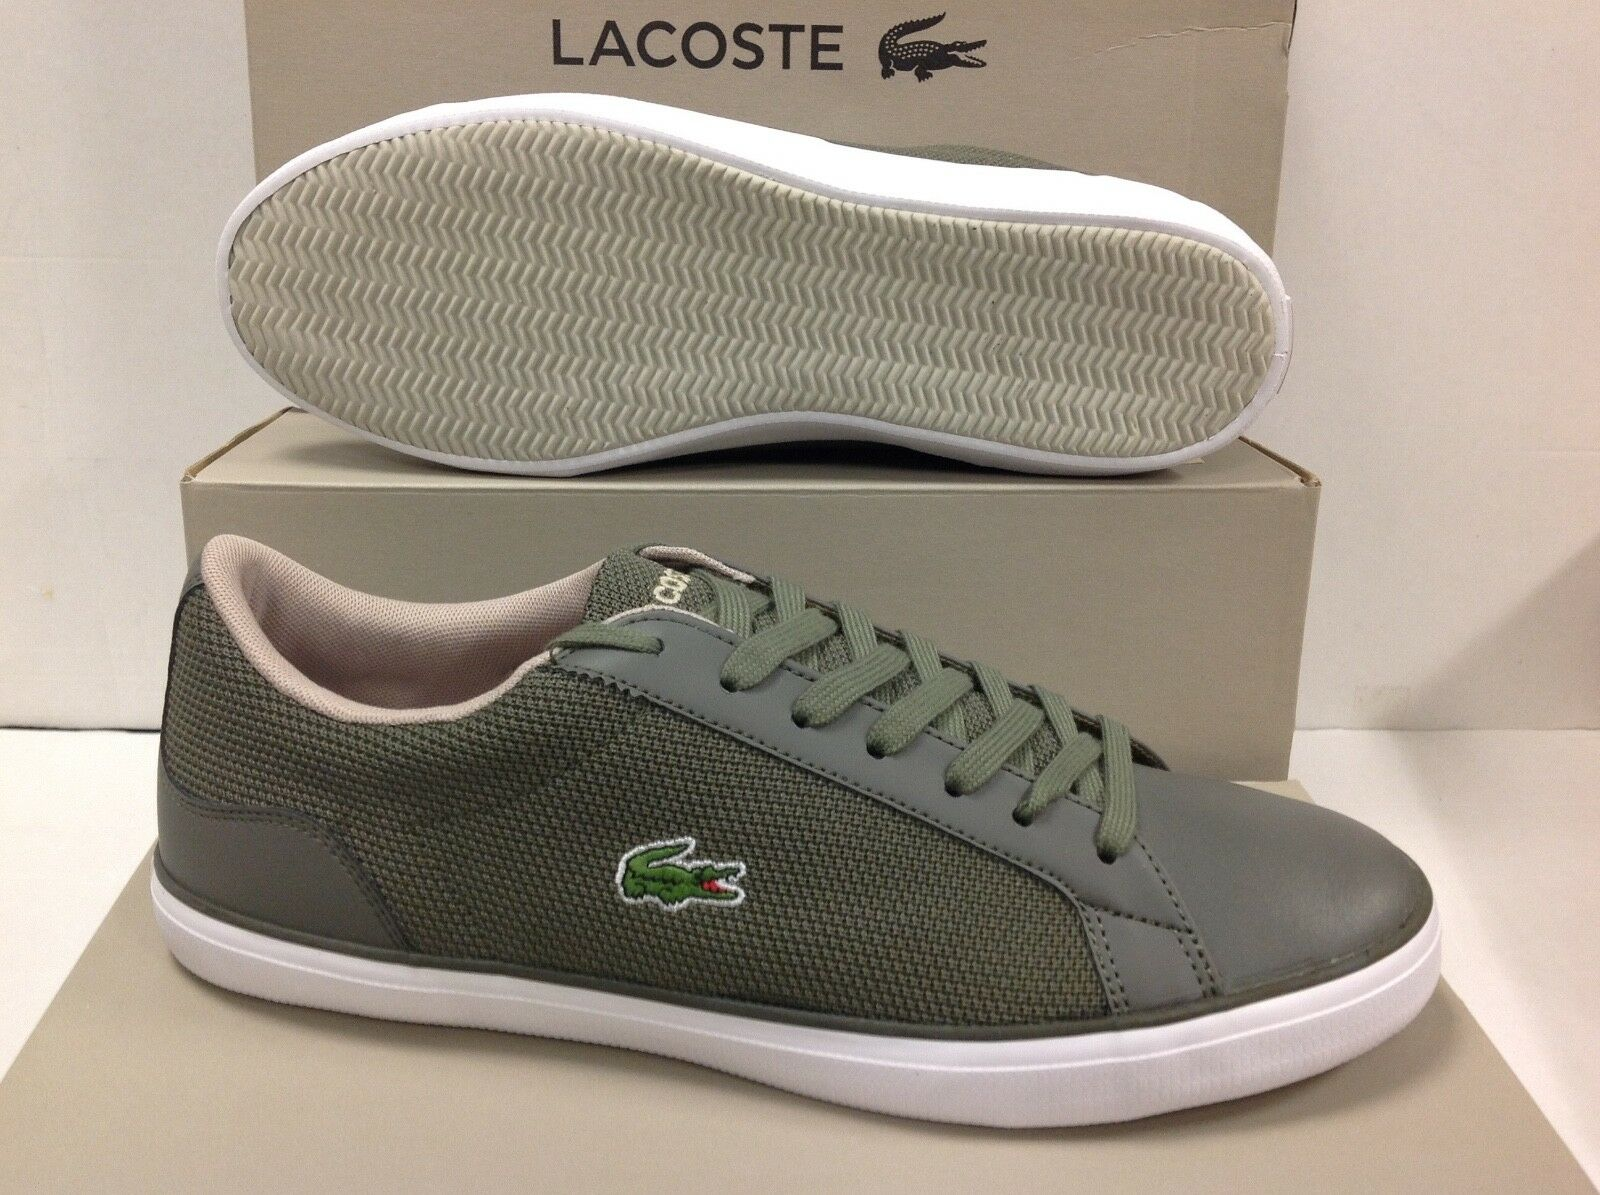 Lacoste LEROND 117 Men's Sneakers Trainers, Size 7.5 UK 7.5 Size / EU 41 / USA 8.5 eabba7